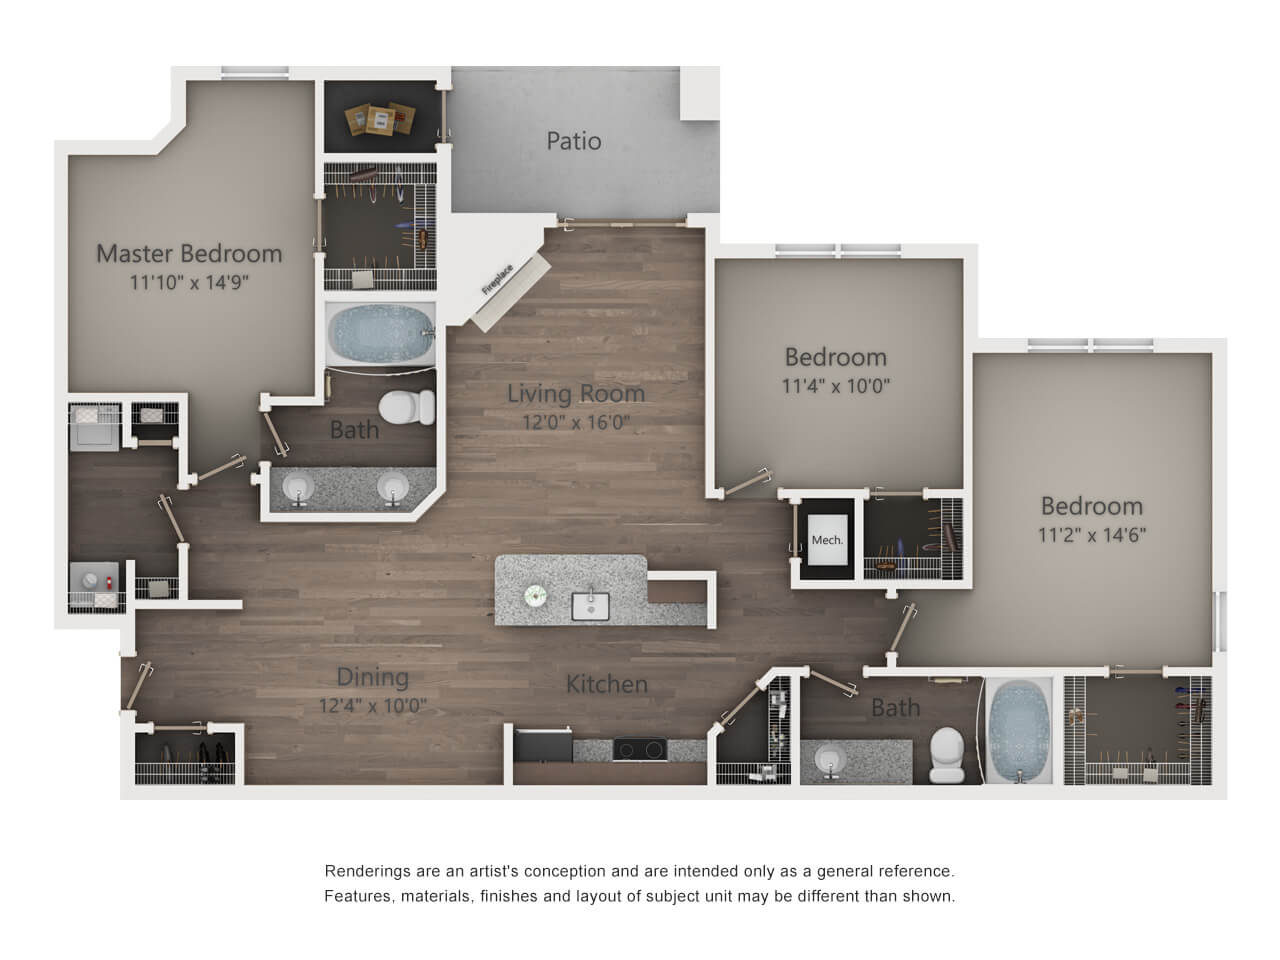 lincoln property company 2d floor plans - Apartment Website Design